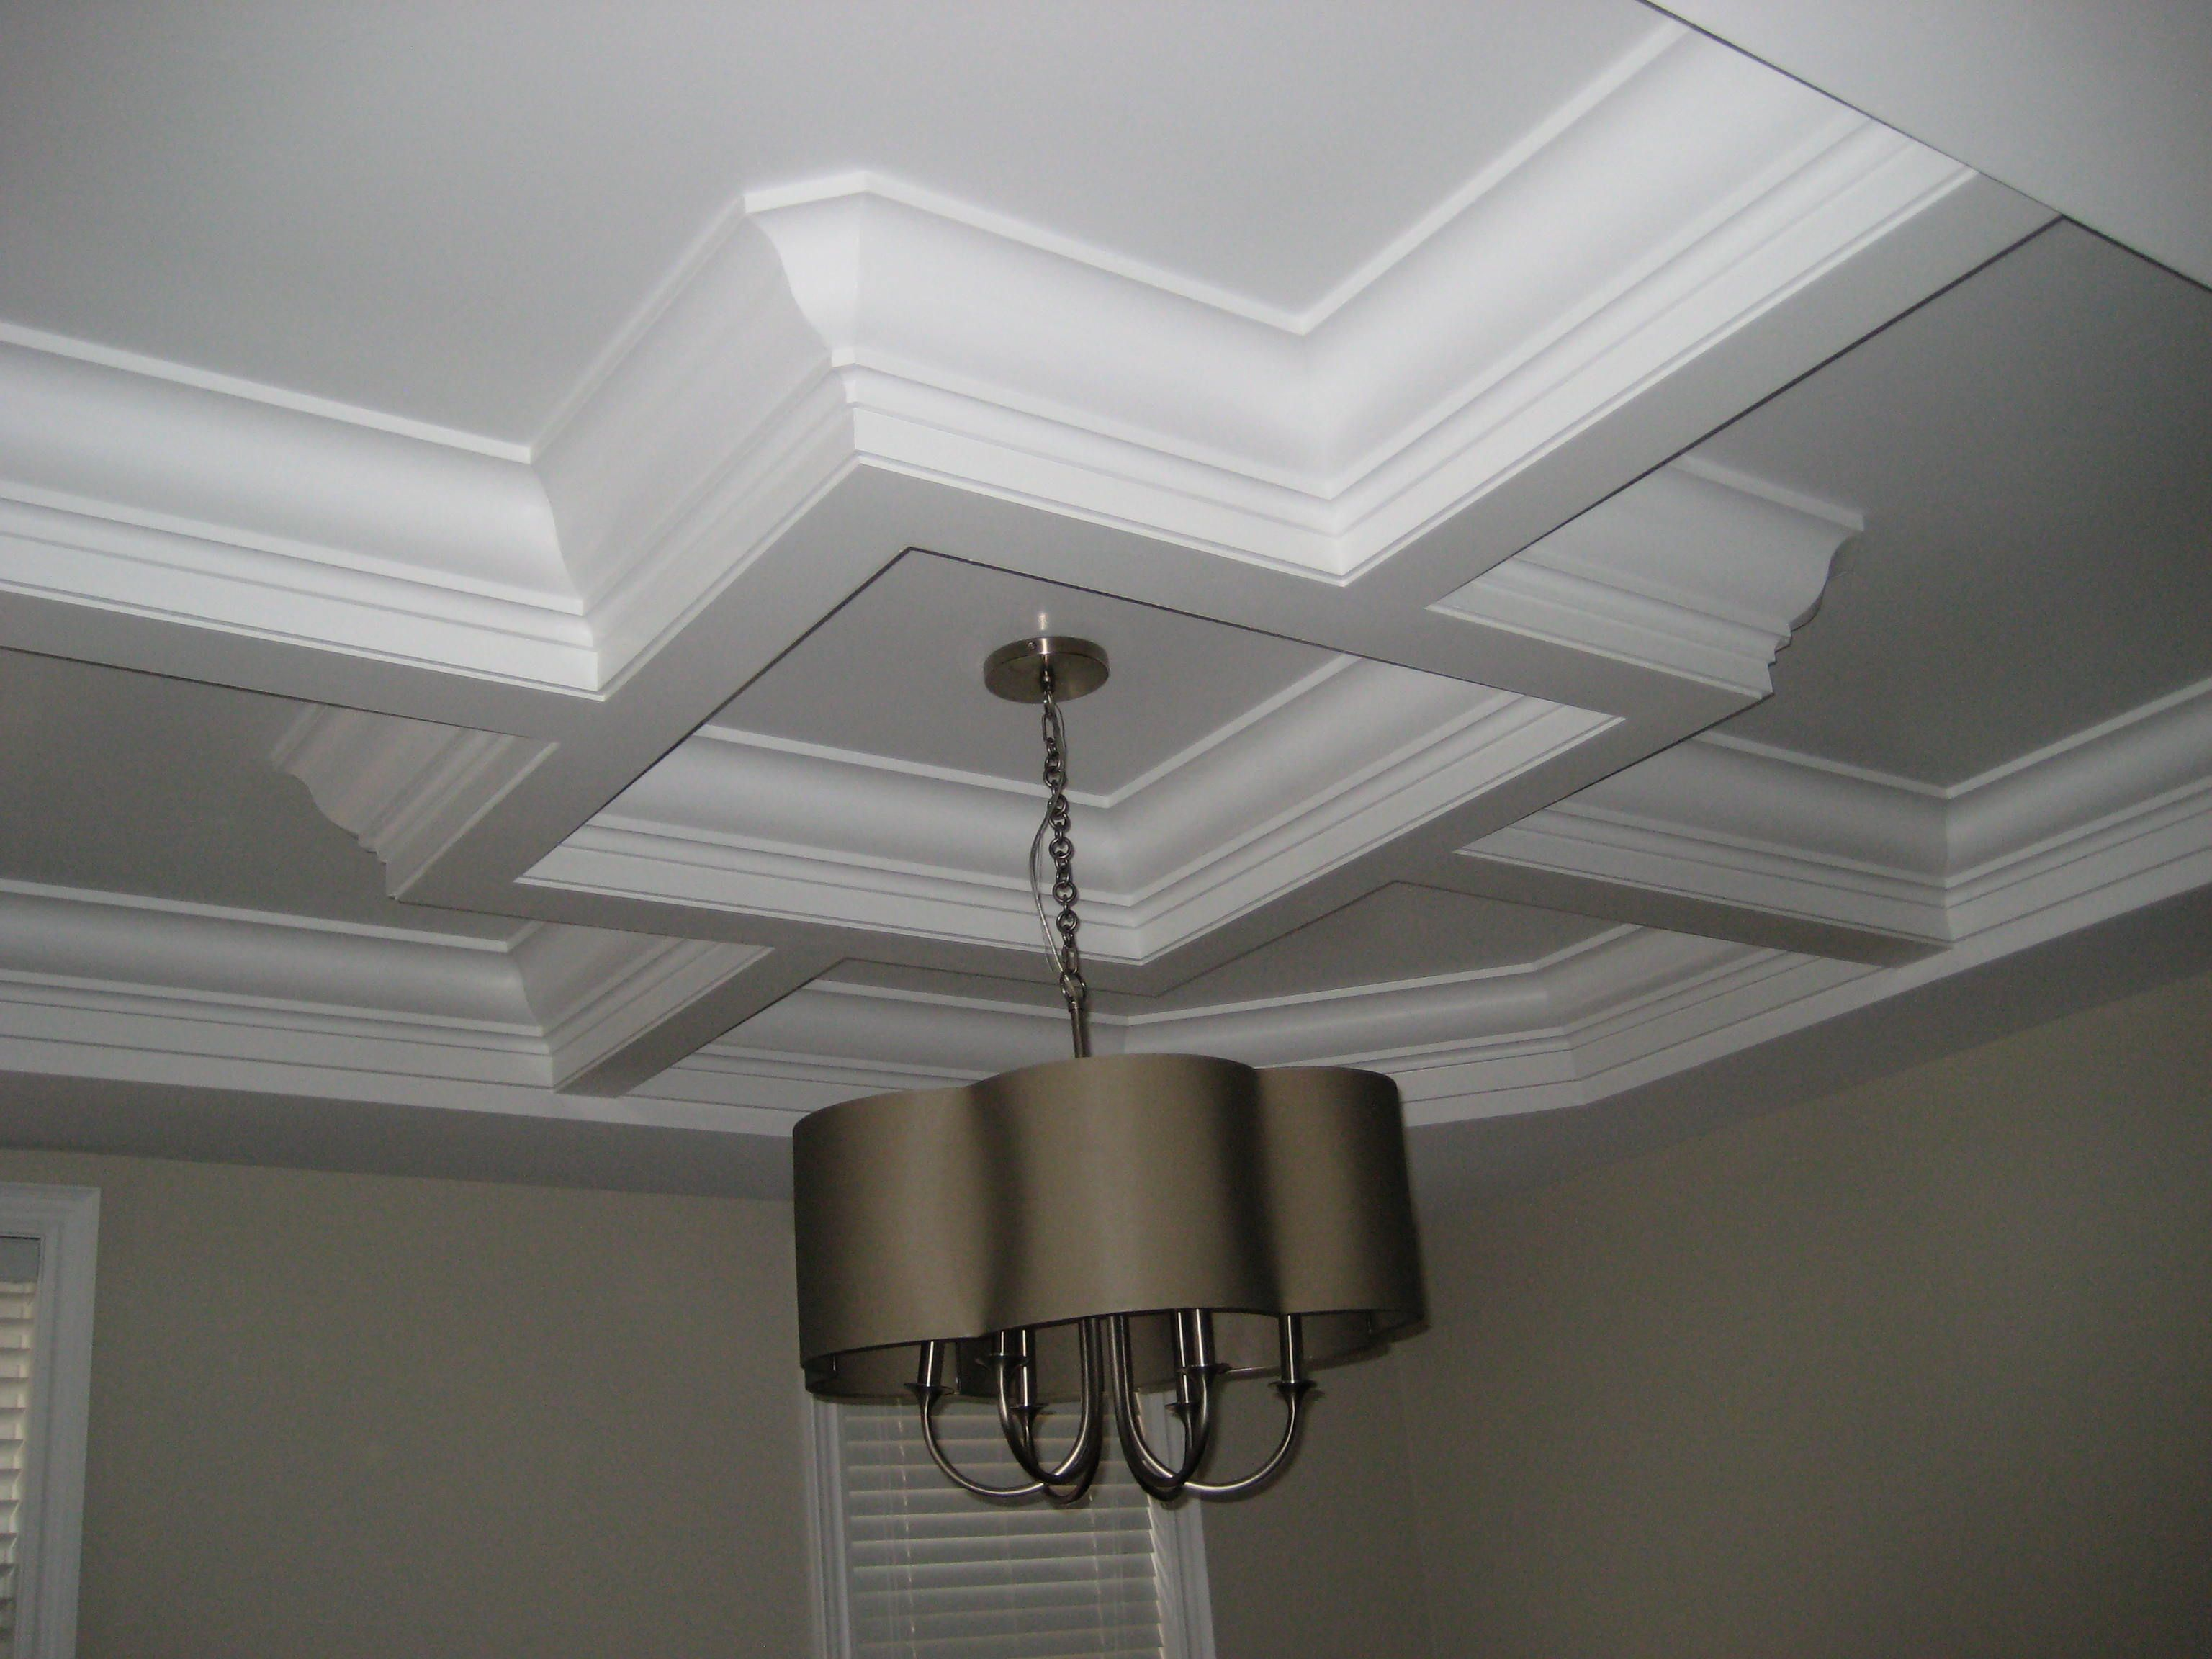 Waffle Ceiling Dining Room Georgian Crown Moulding Installed - Cornice crown moulding toronto wainscoting coffered ceiling